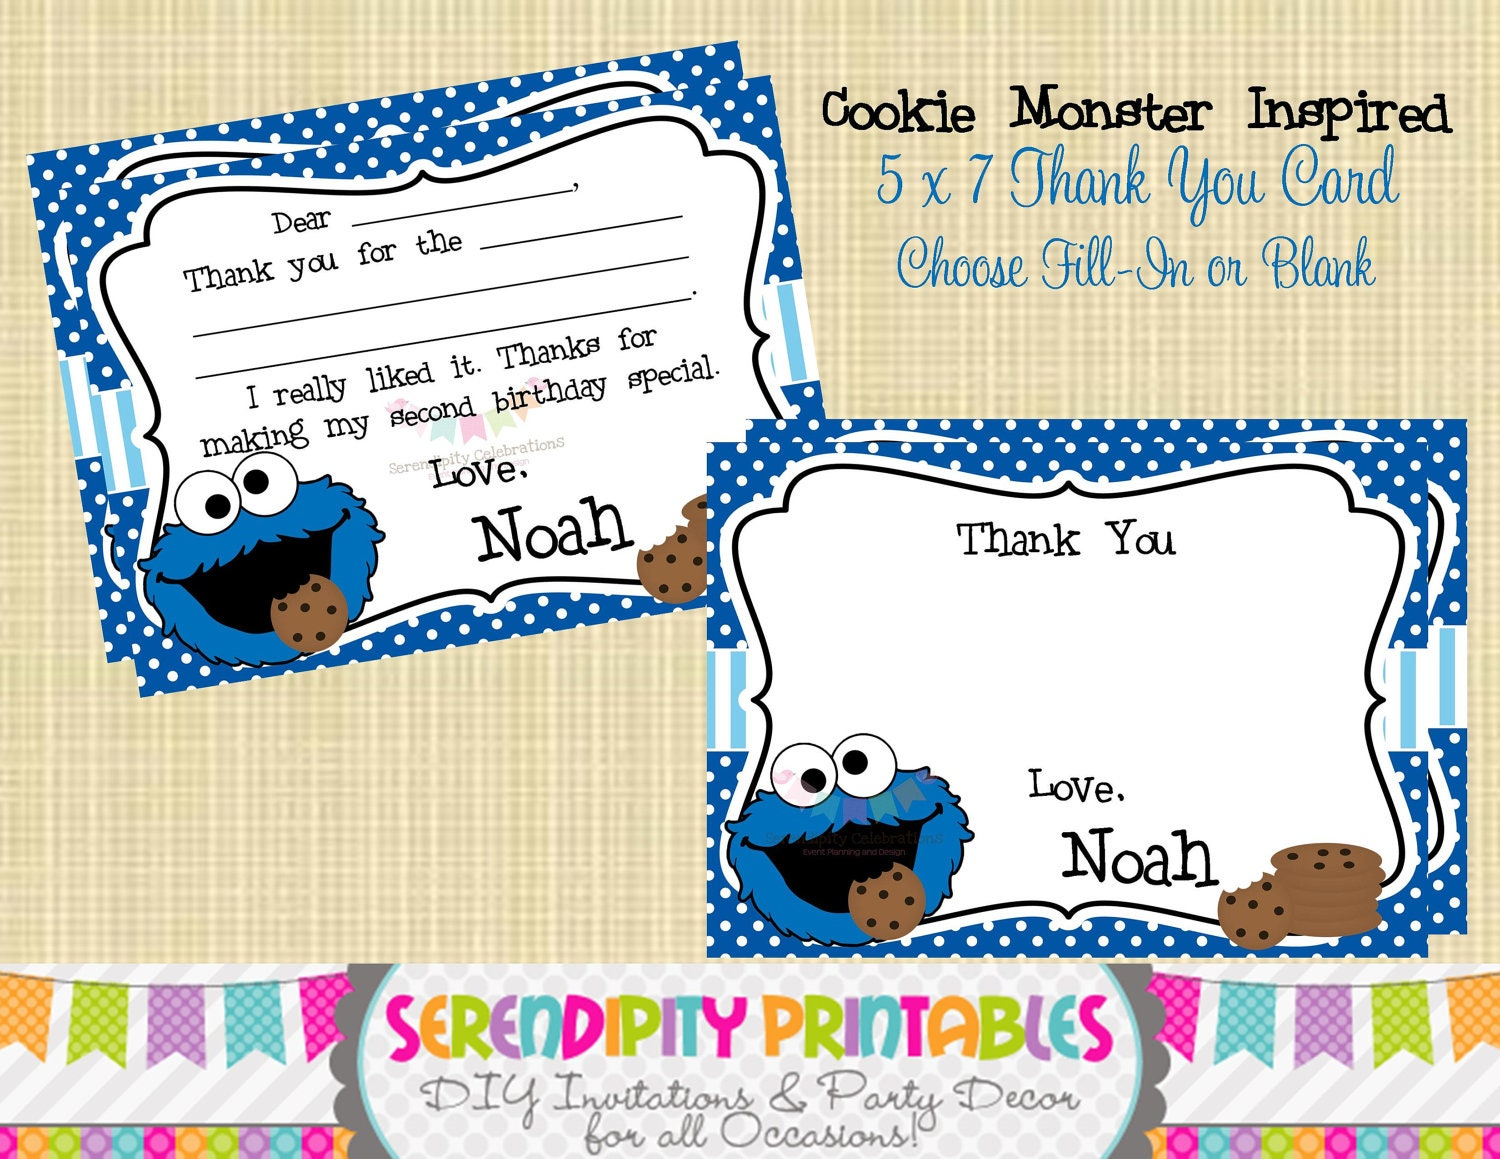 Cookie Monster Inspired Collection: Printable Thank You Card | Etsy